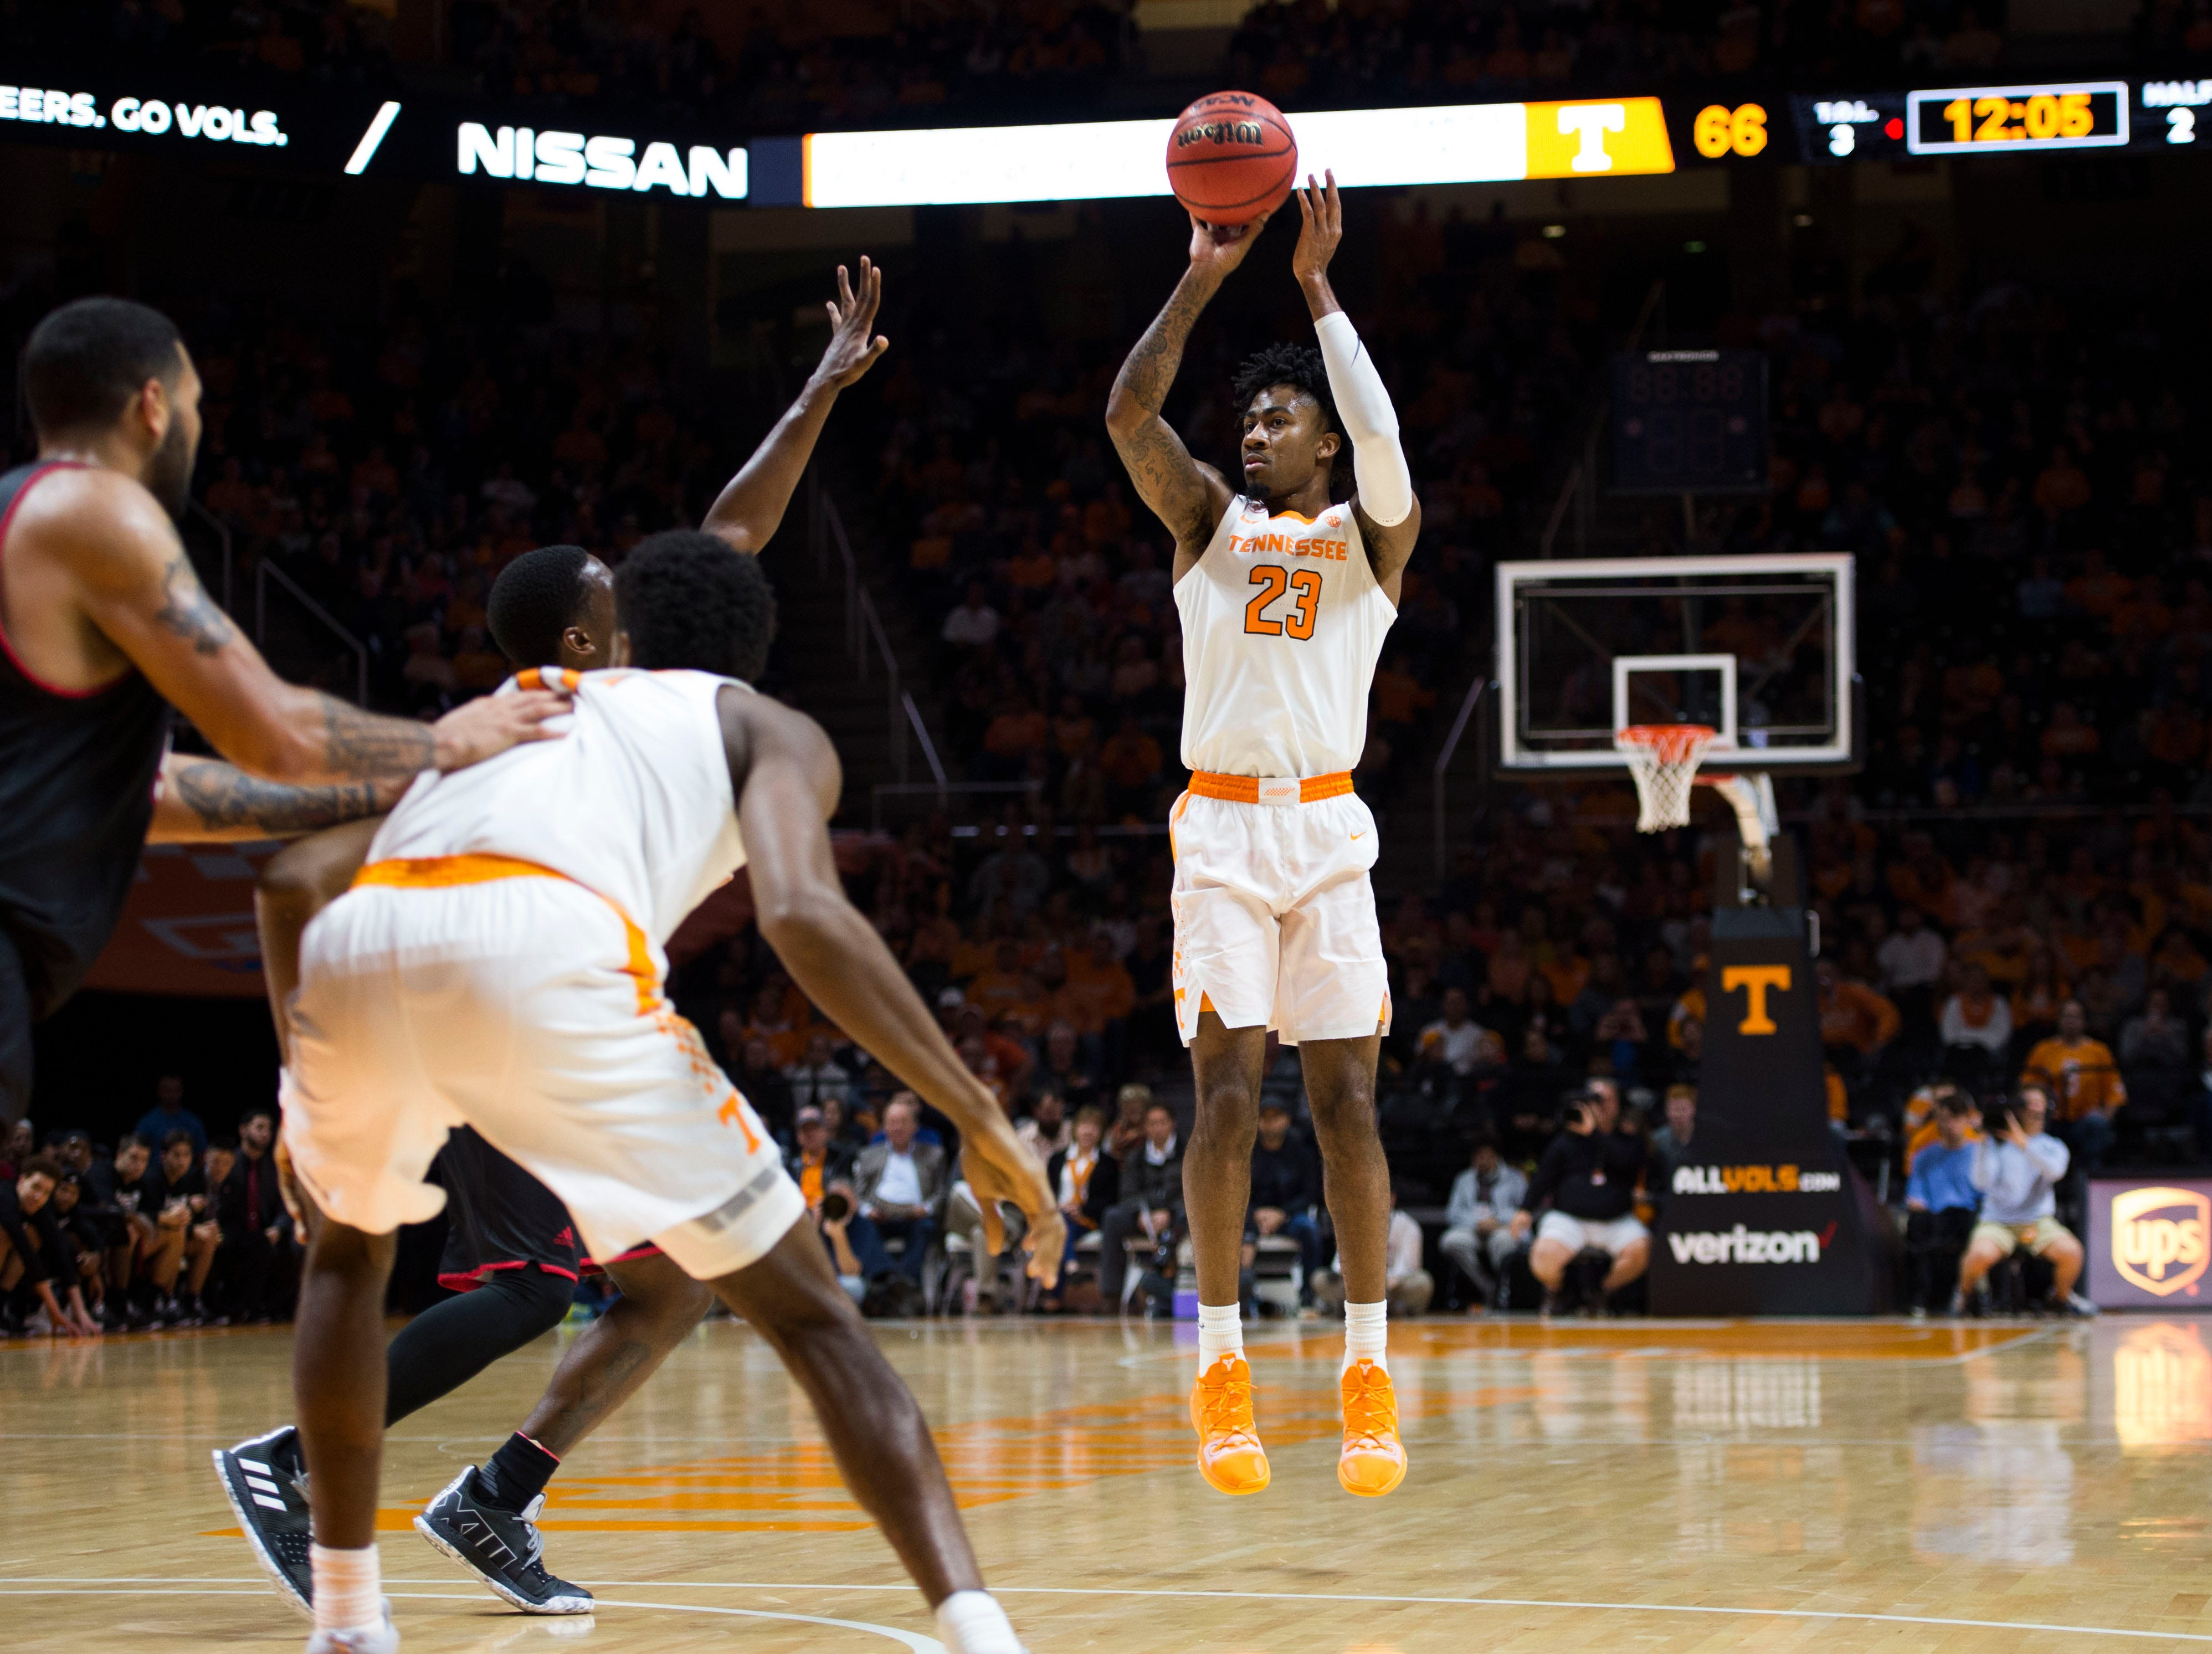 Tennessee's Jordan Bowden (23) takes a shot during a game between Tennessee and Louisiana in Thompson-Boling Arena Friday, Nov. 9, 2018. Tennessee defeated Louisiana 87-65.